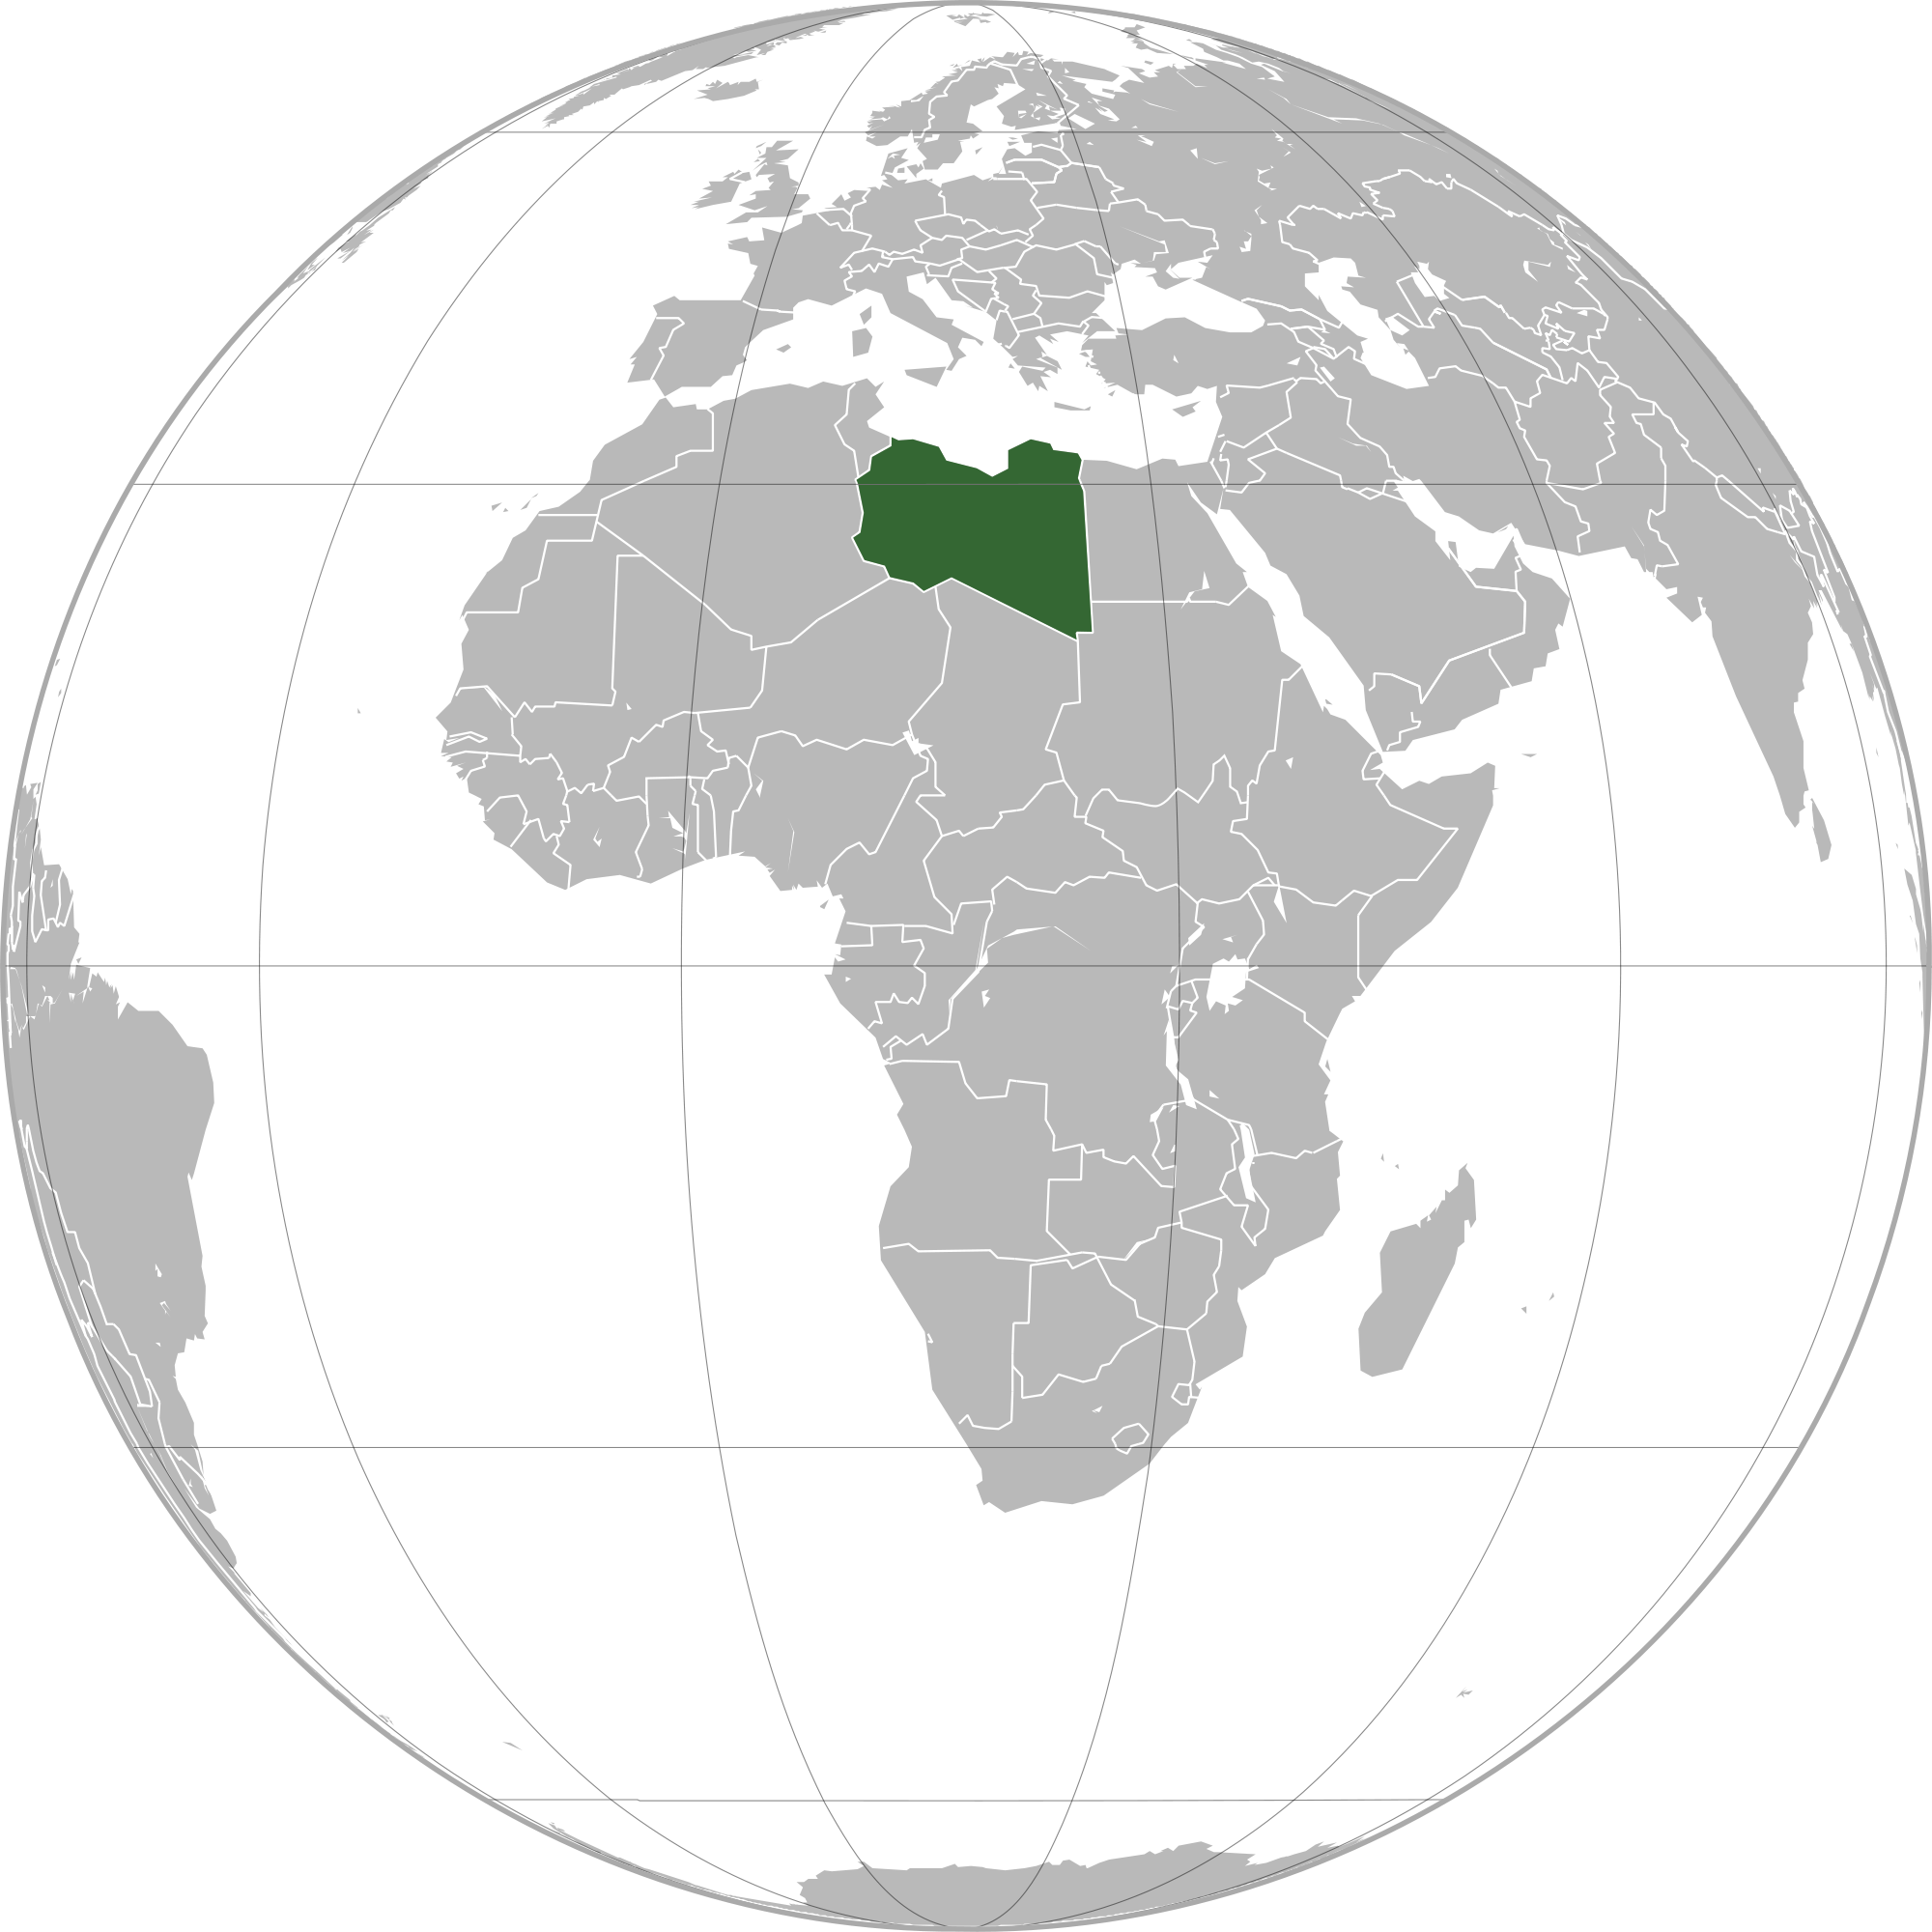 Location of the Libya in the World Map